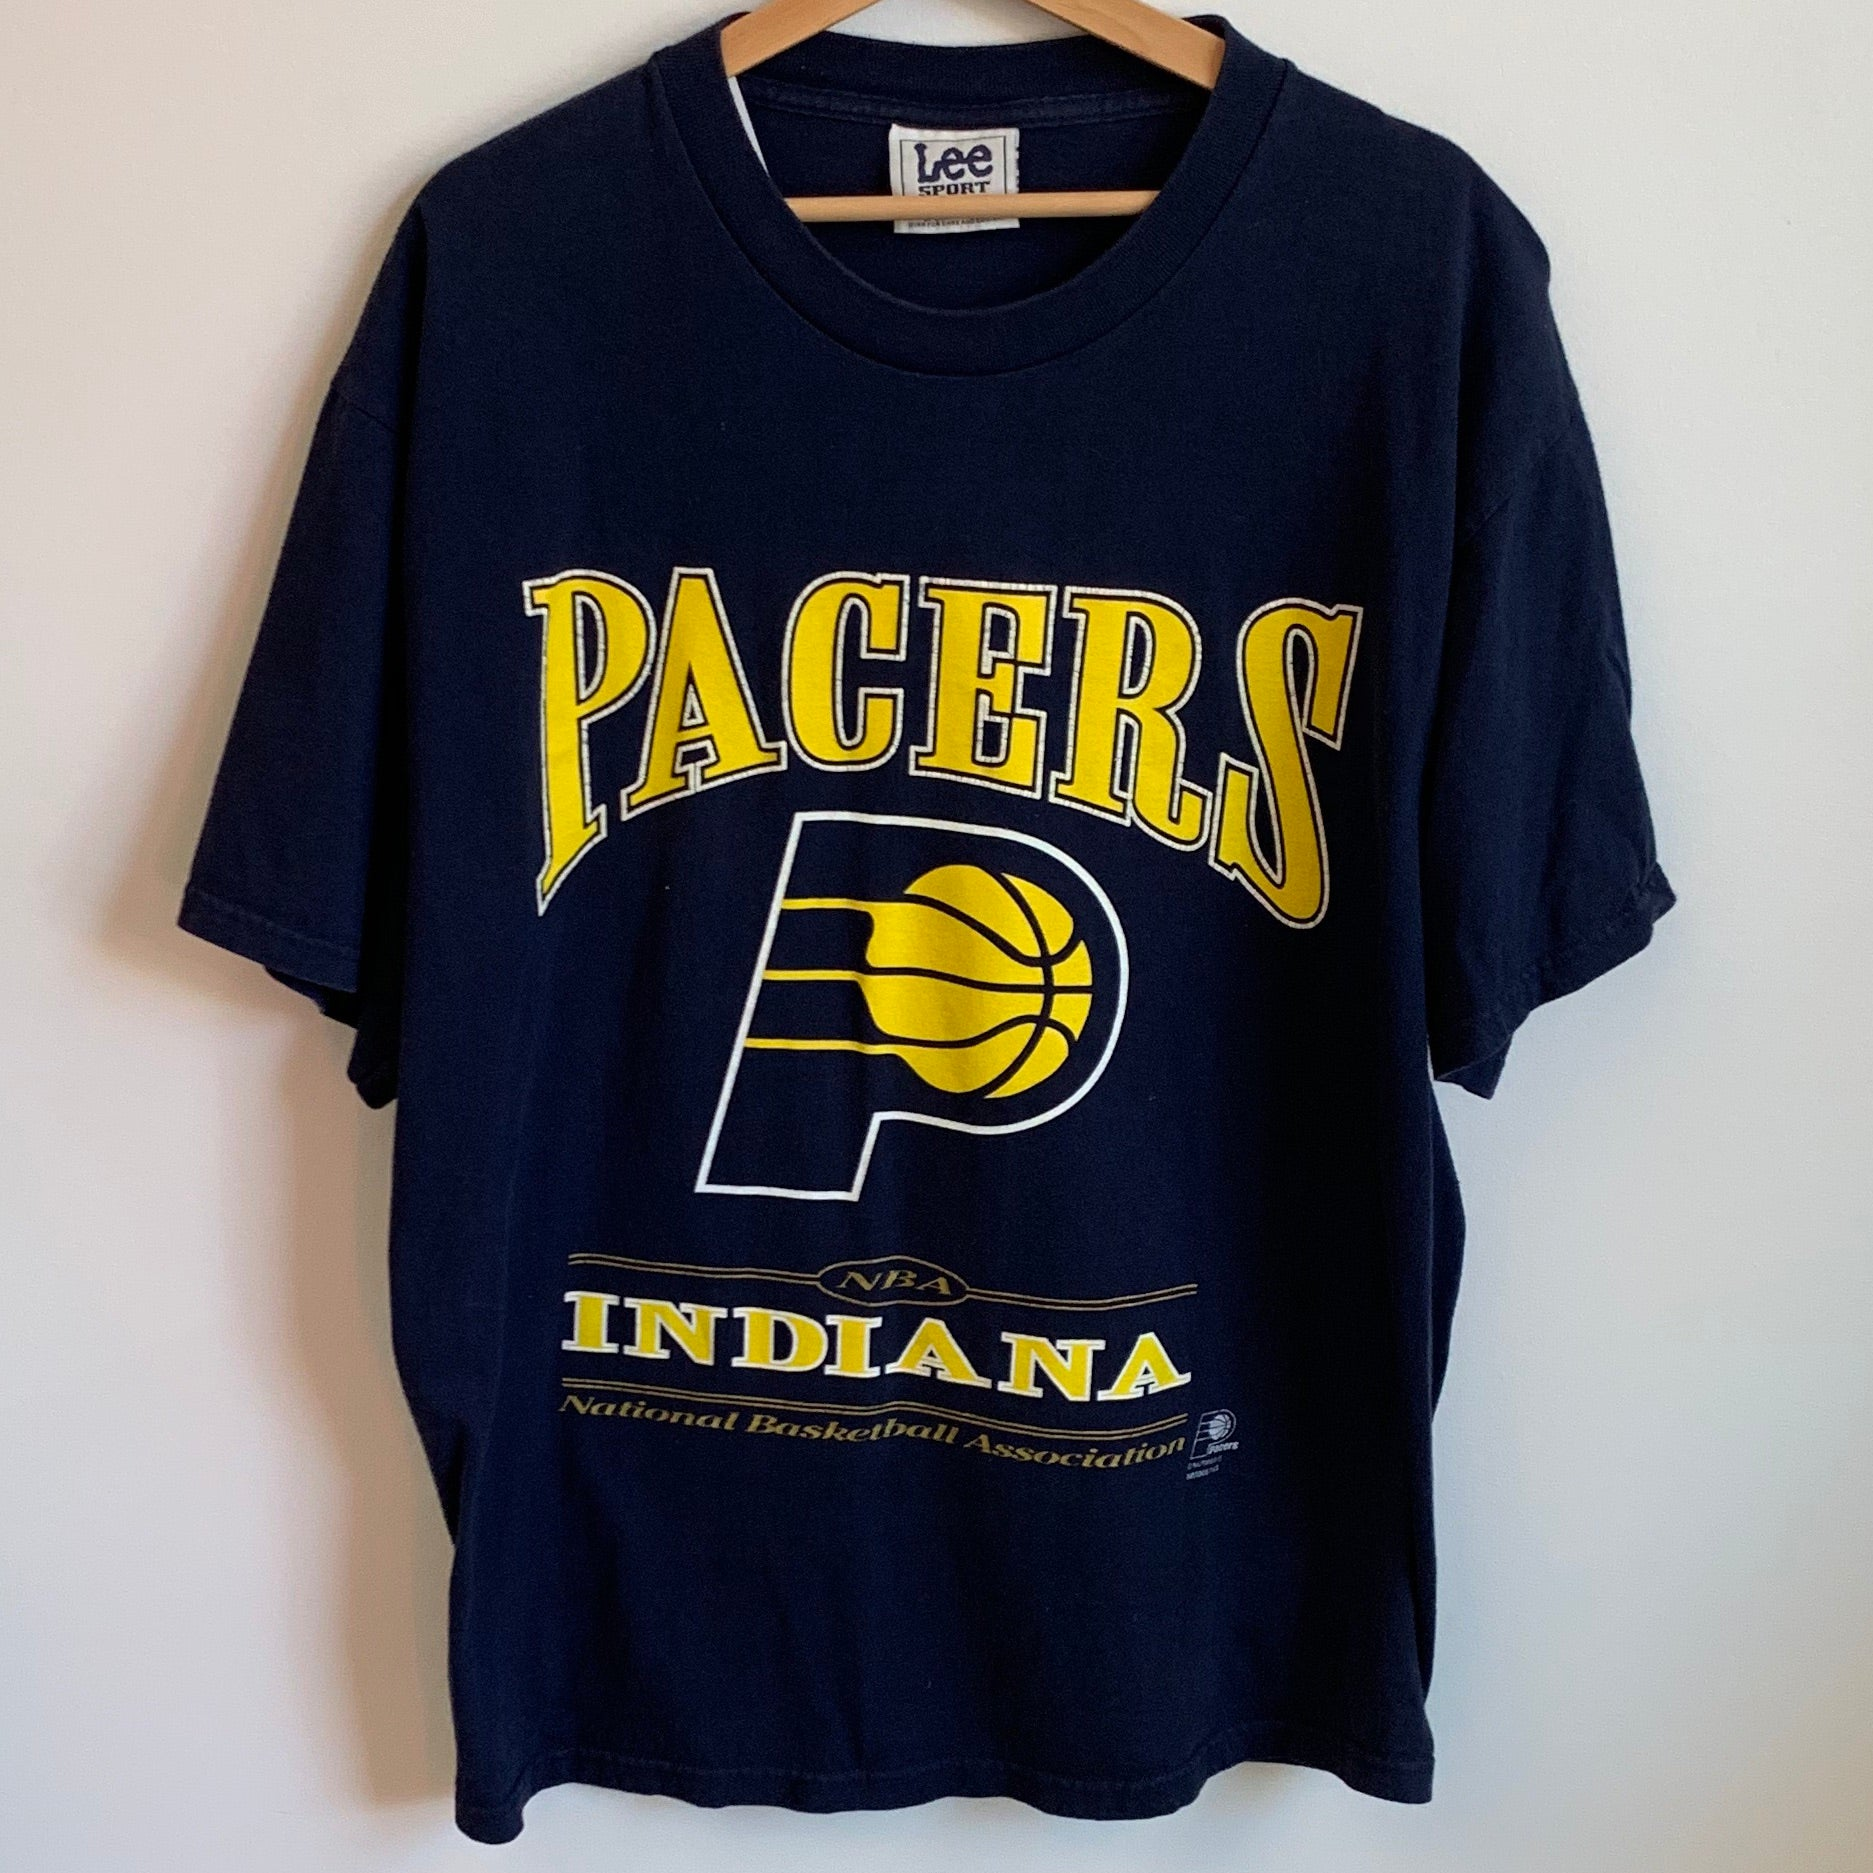 Lee Sport Indiana Pacers Navy Tee Shirt